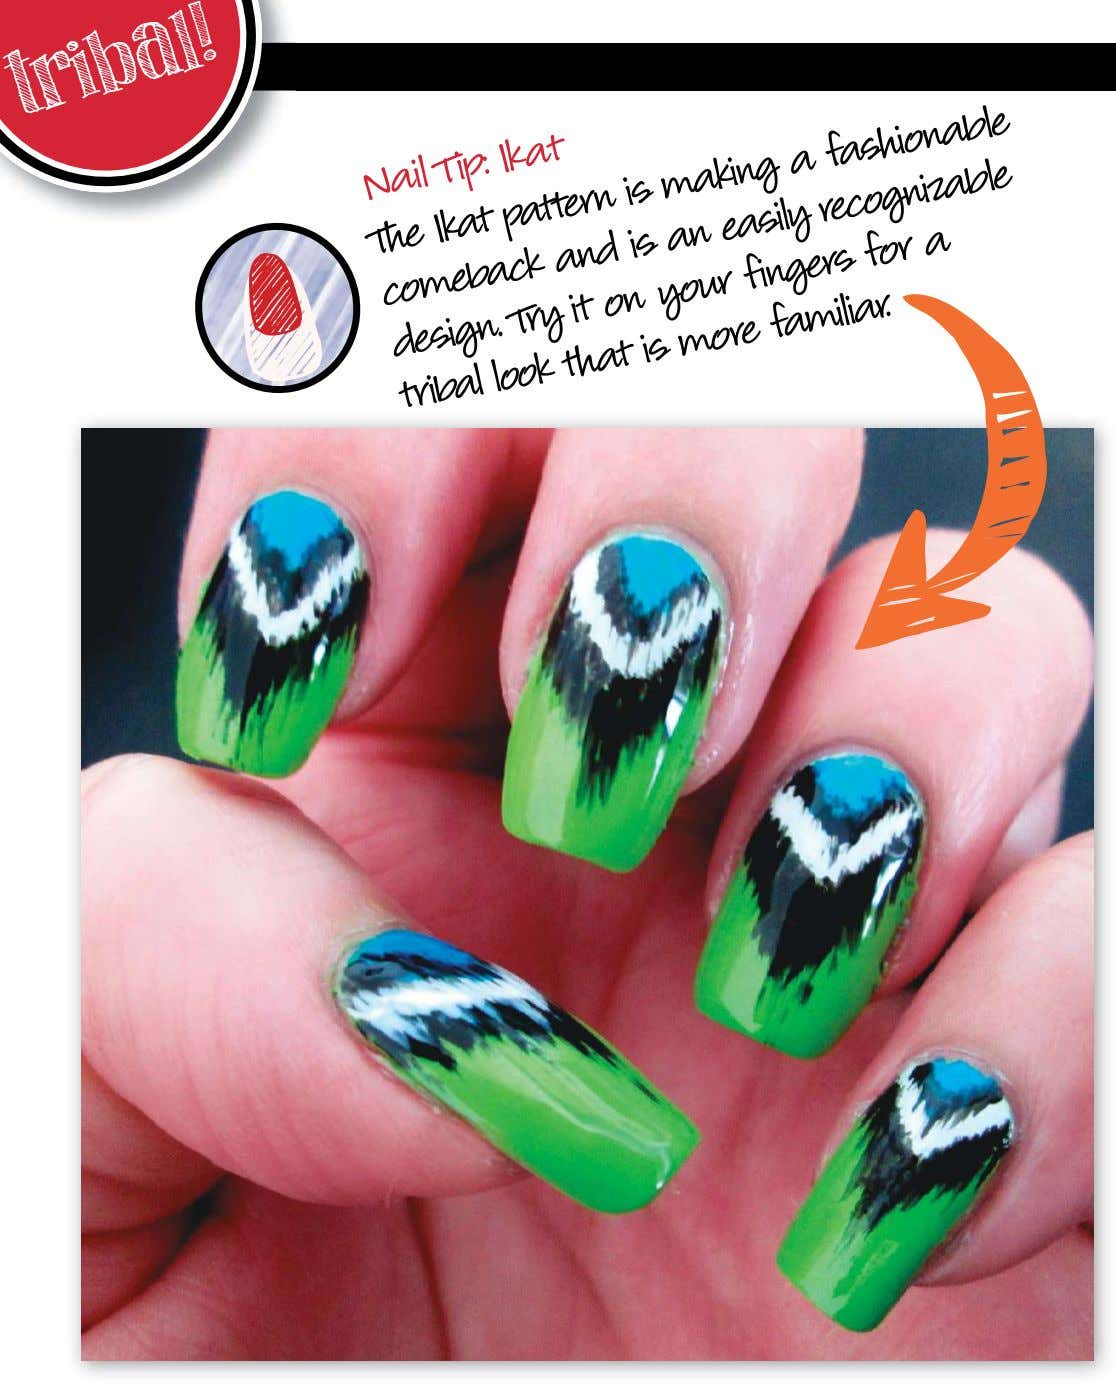 tribal! Nail Tip: Ikat The pattern making fashionable comeback and an easily a recognizable design.